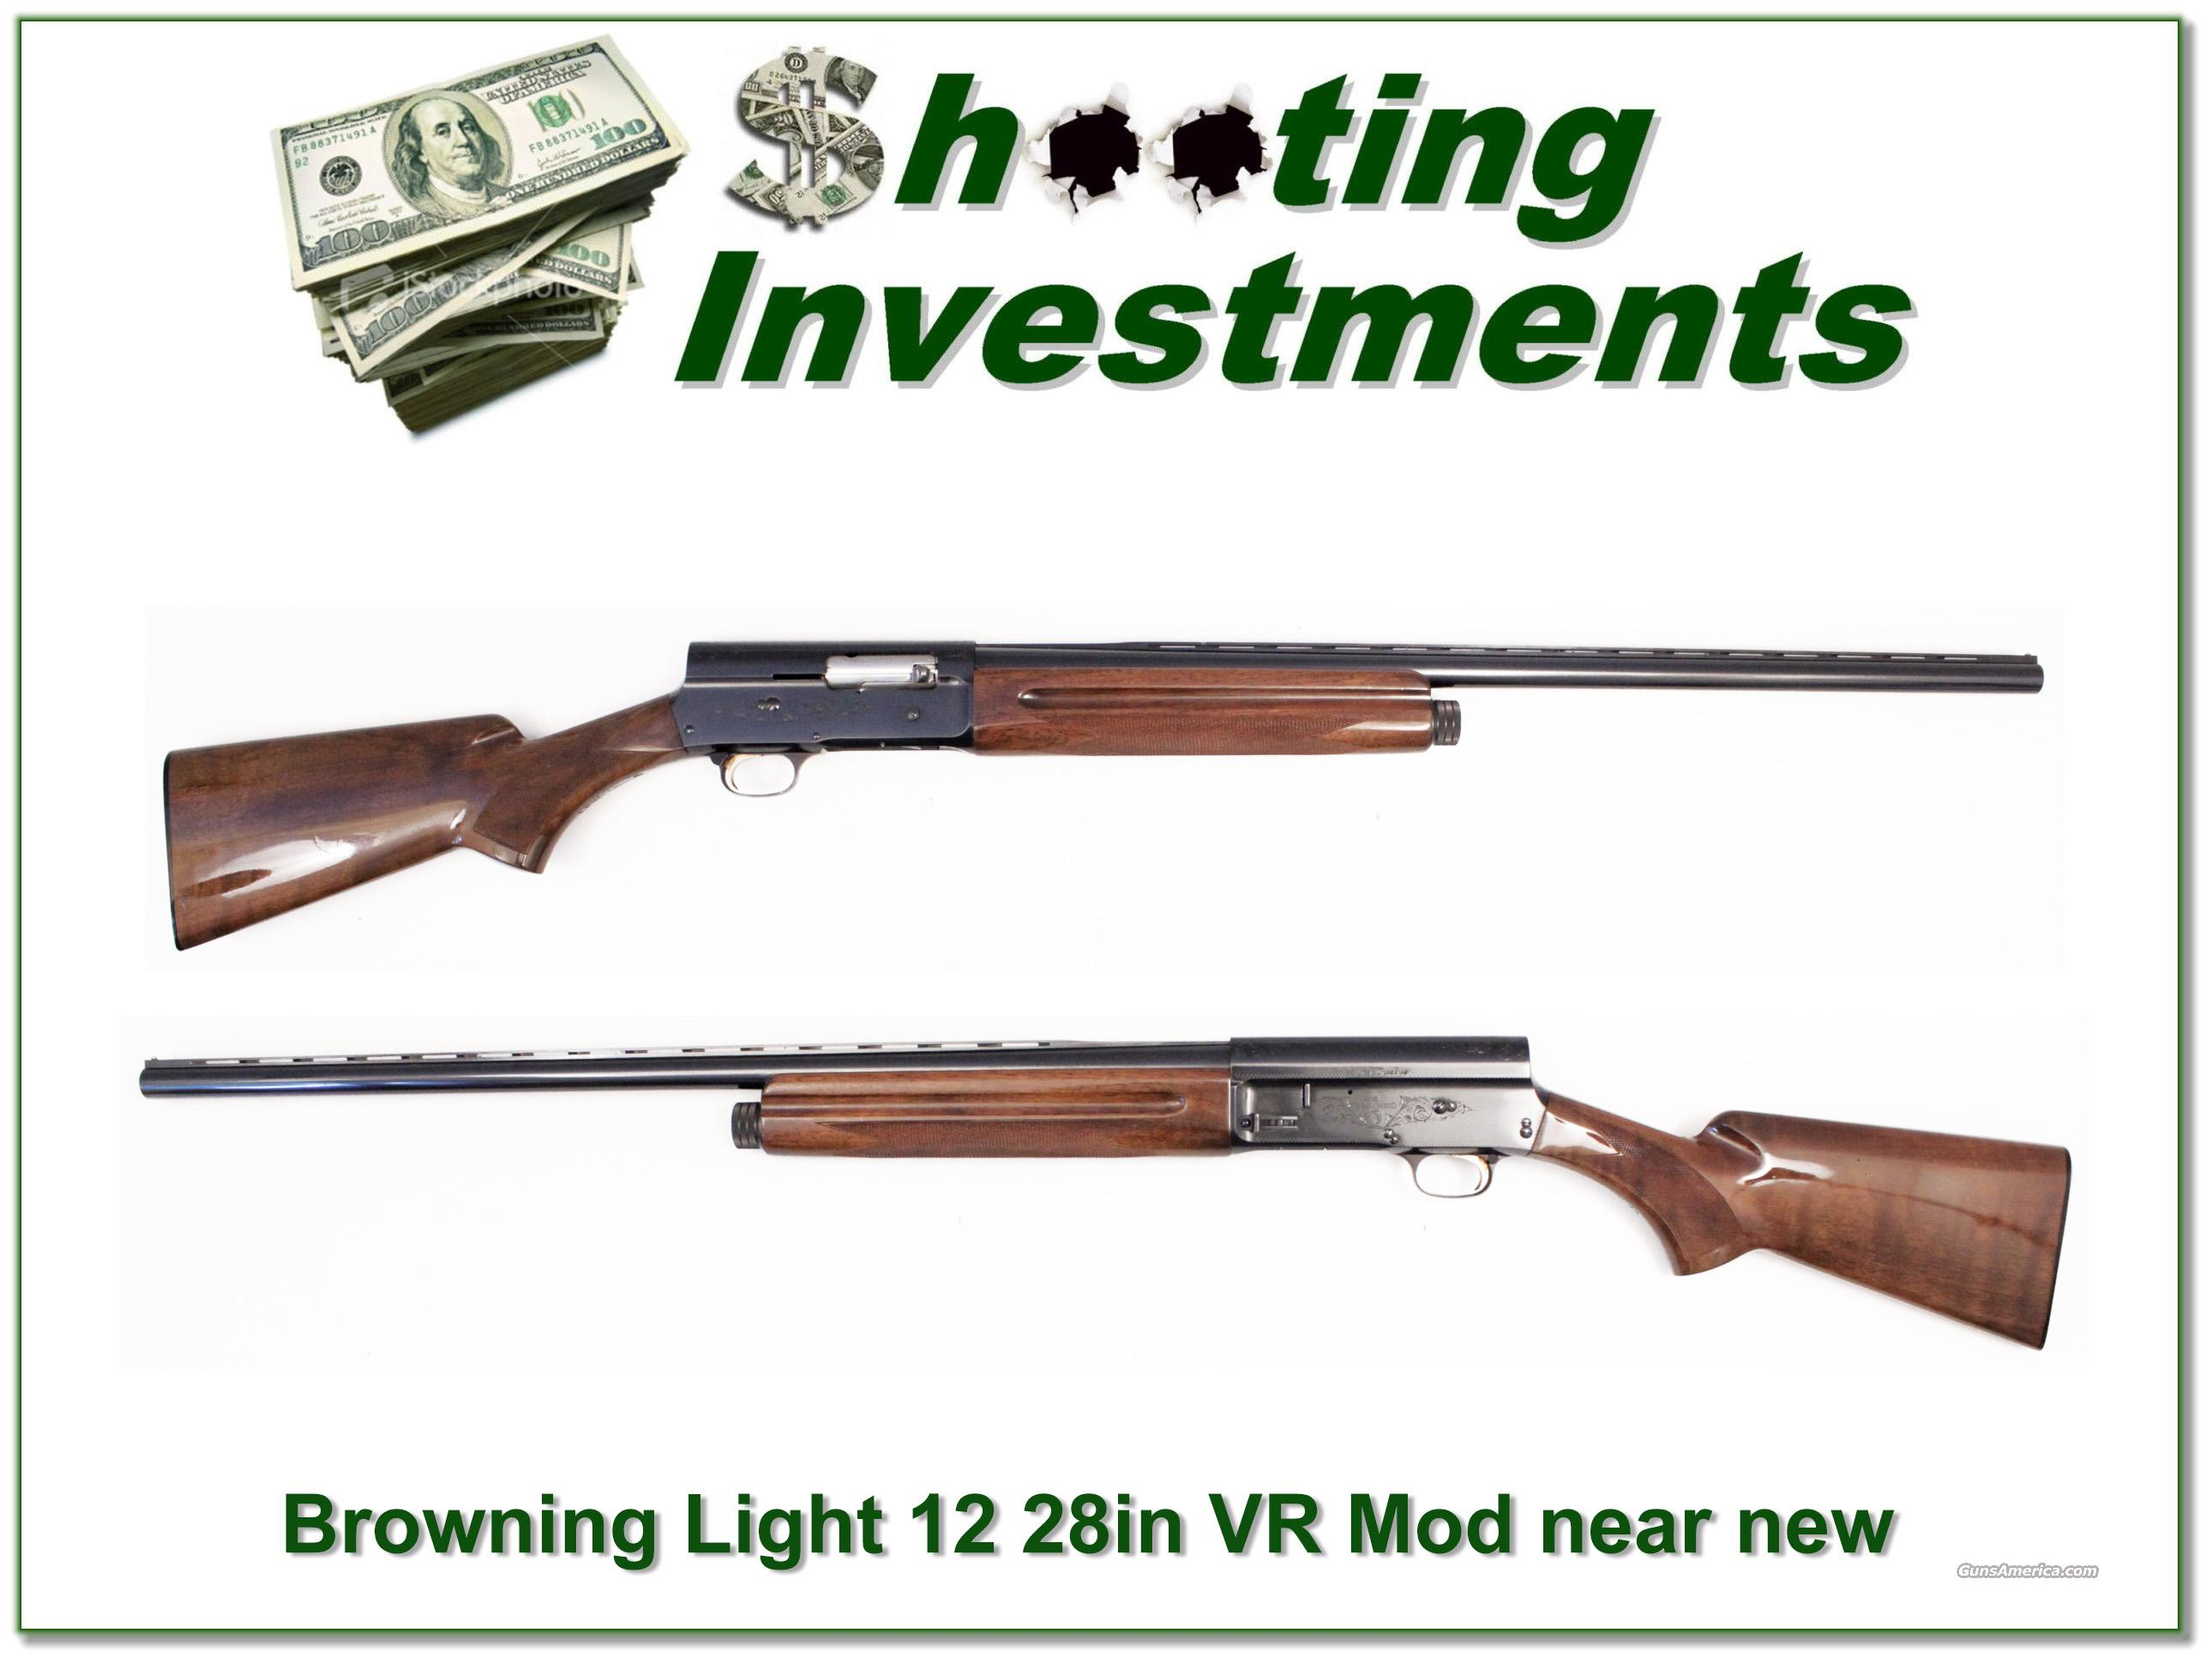 Browning A5 Light 12 28in VR near new  Guns > Shotguns > Browning Shotguns > Autoloaders > Hunting